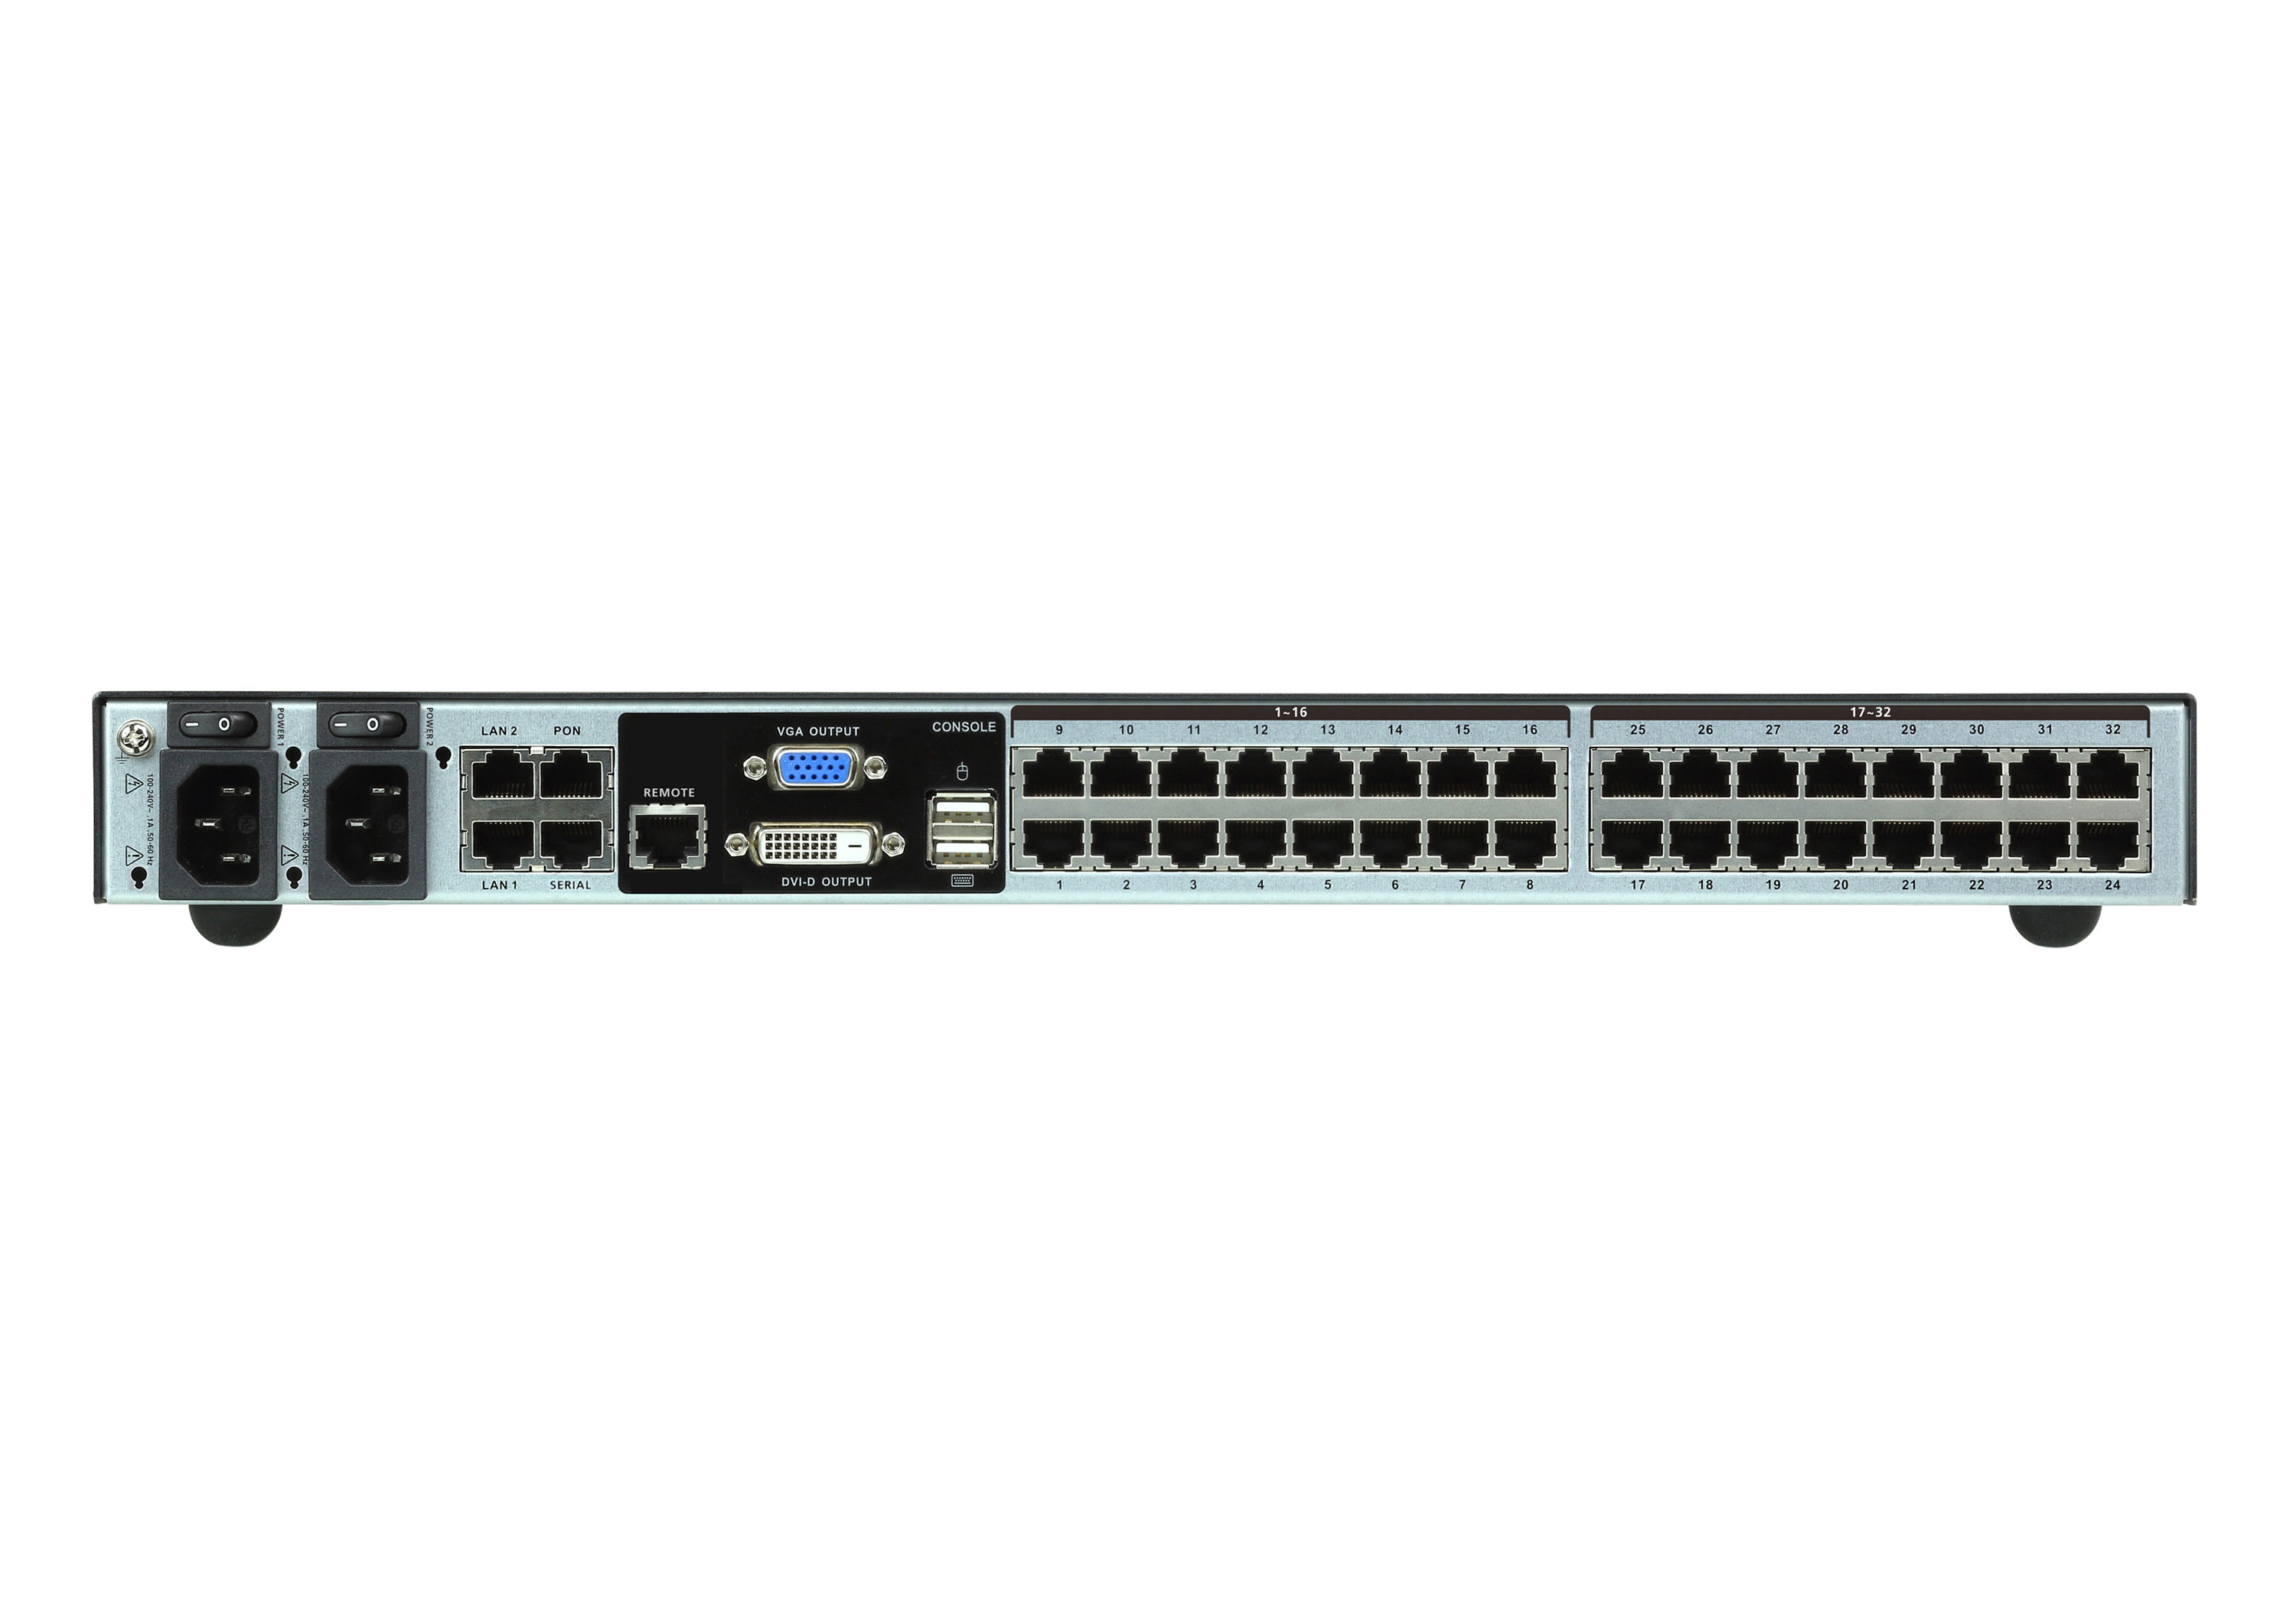 1-Local /4-Remote Access 40-Port Cat 5 KVM over IP Switch with Virtual Media (1920 x 1200)-2